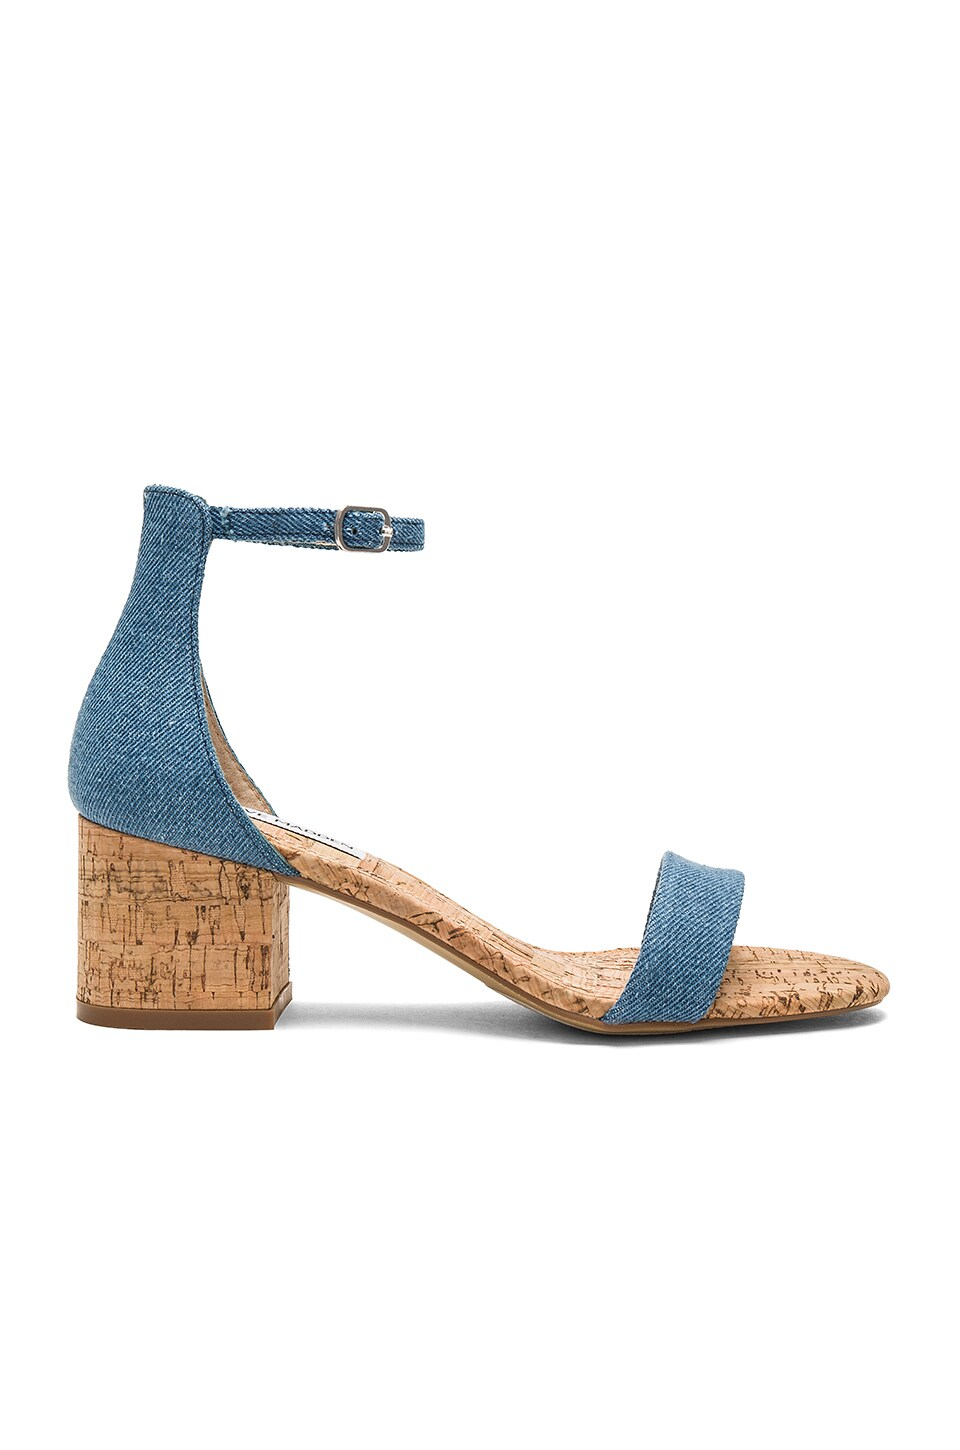 Steve Madden Irenee C Sandals in Denim